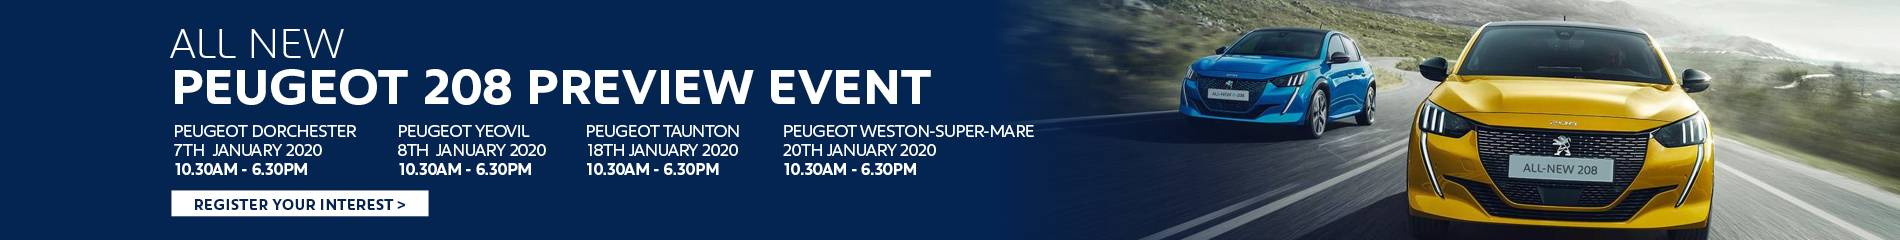 Peugeot 2008 Preview Event